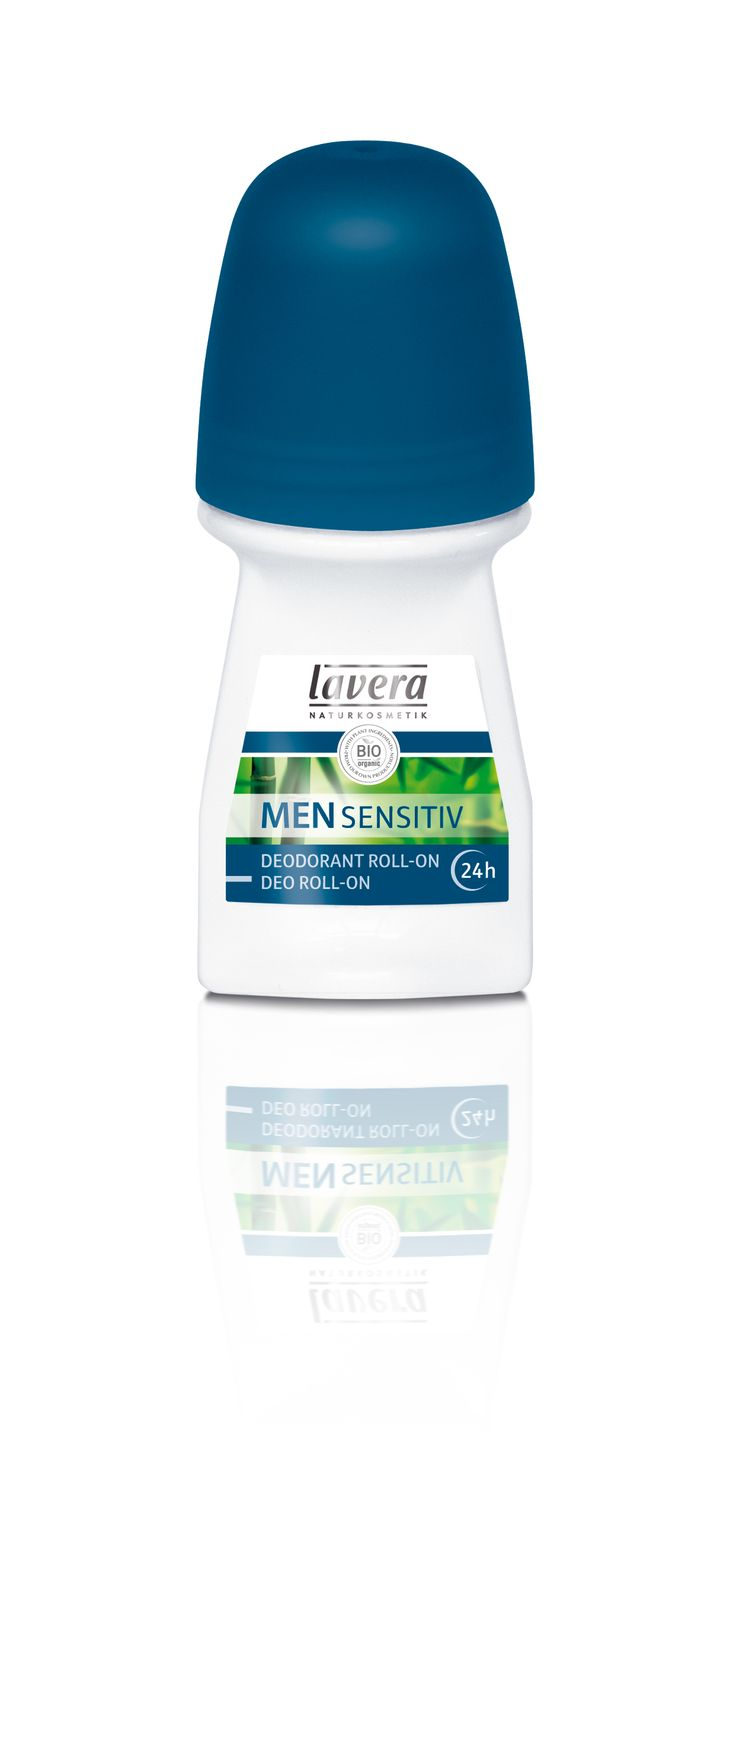 NEW Men Sensitiv Range from Lavera. Men Sensitiv Deo Roll On with 24hr protection against odour. This  has a gorgeous refreshing zesty scen to keeop any man fresh and revived throughout the day. For more view www.lavera.co.uk